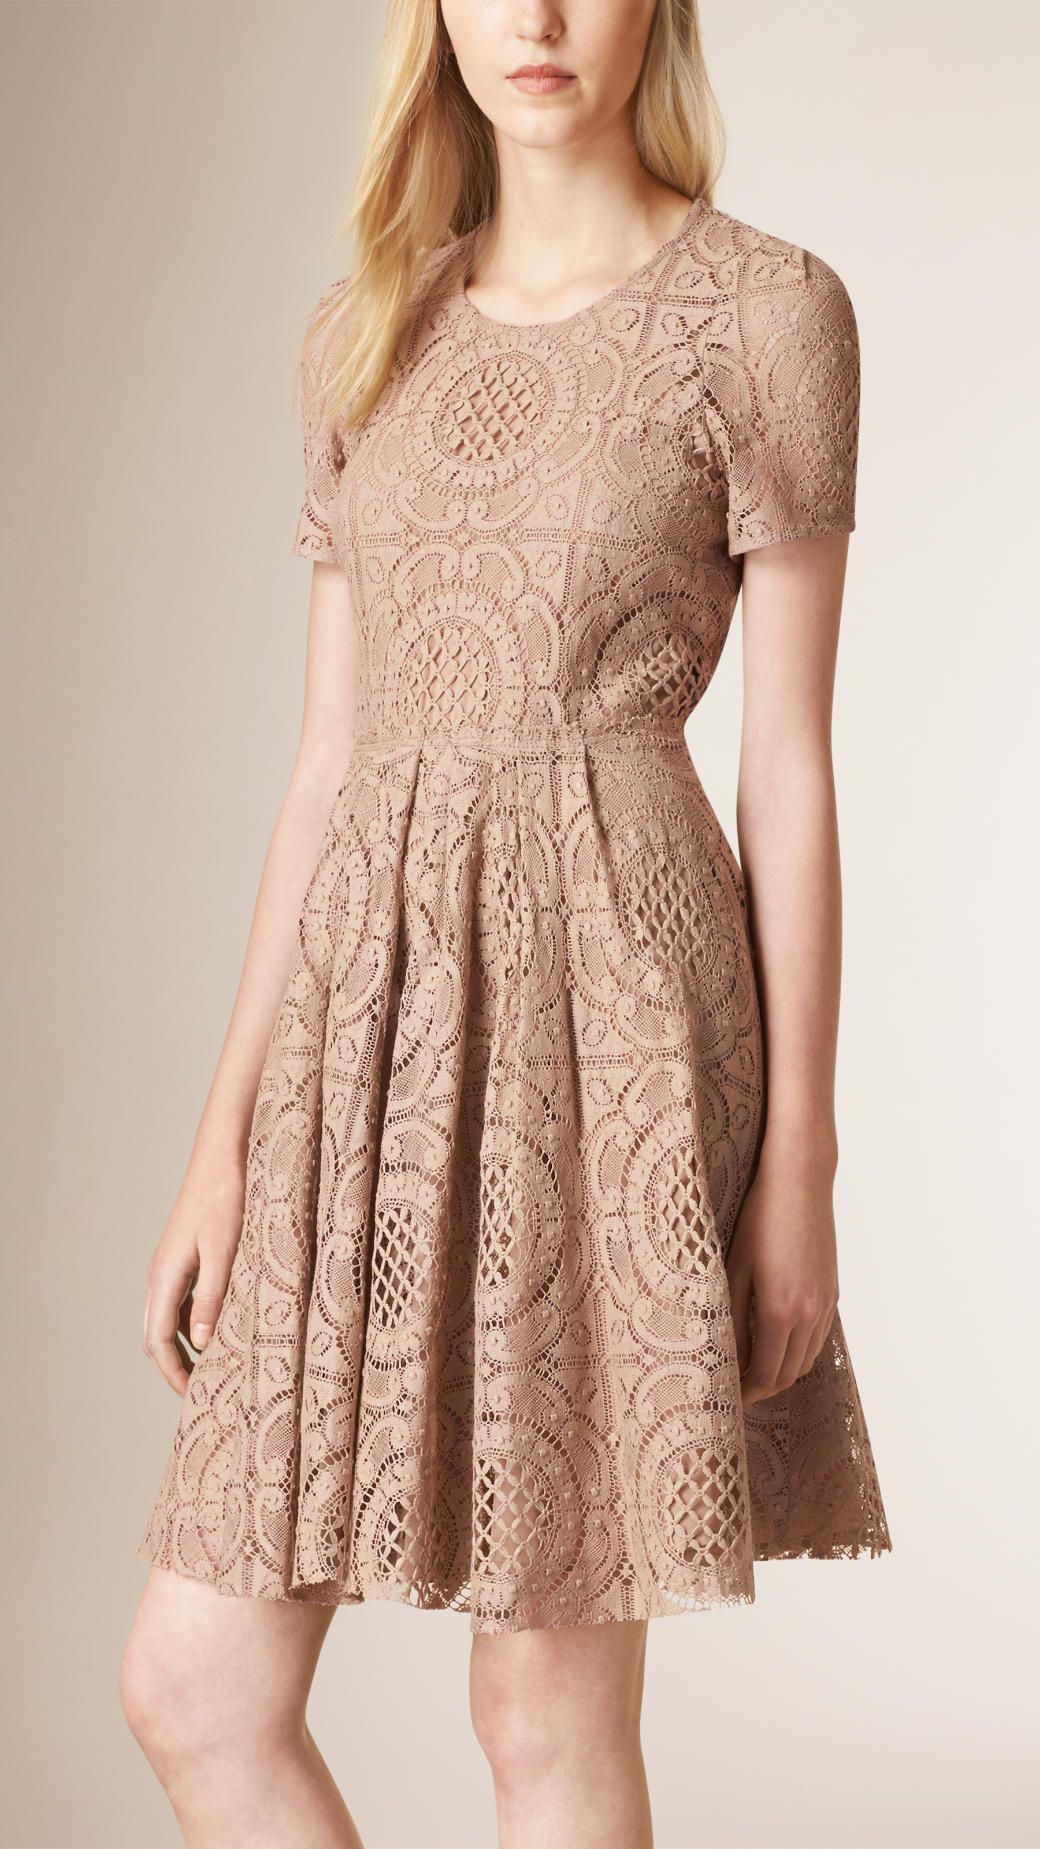 Pink lace dress with jacket  English Lace ALine Dress Nude  Burberry  Dresses and Skirts